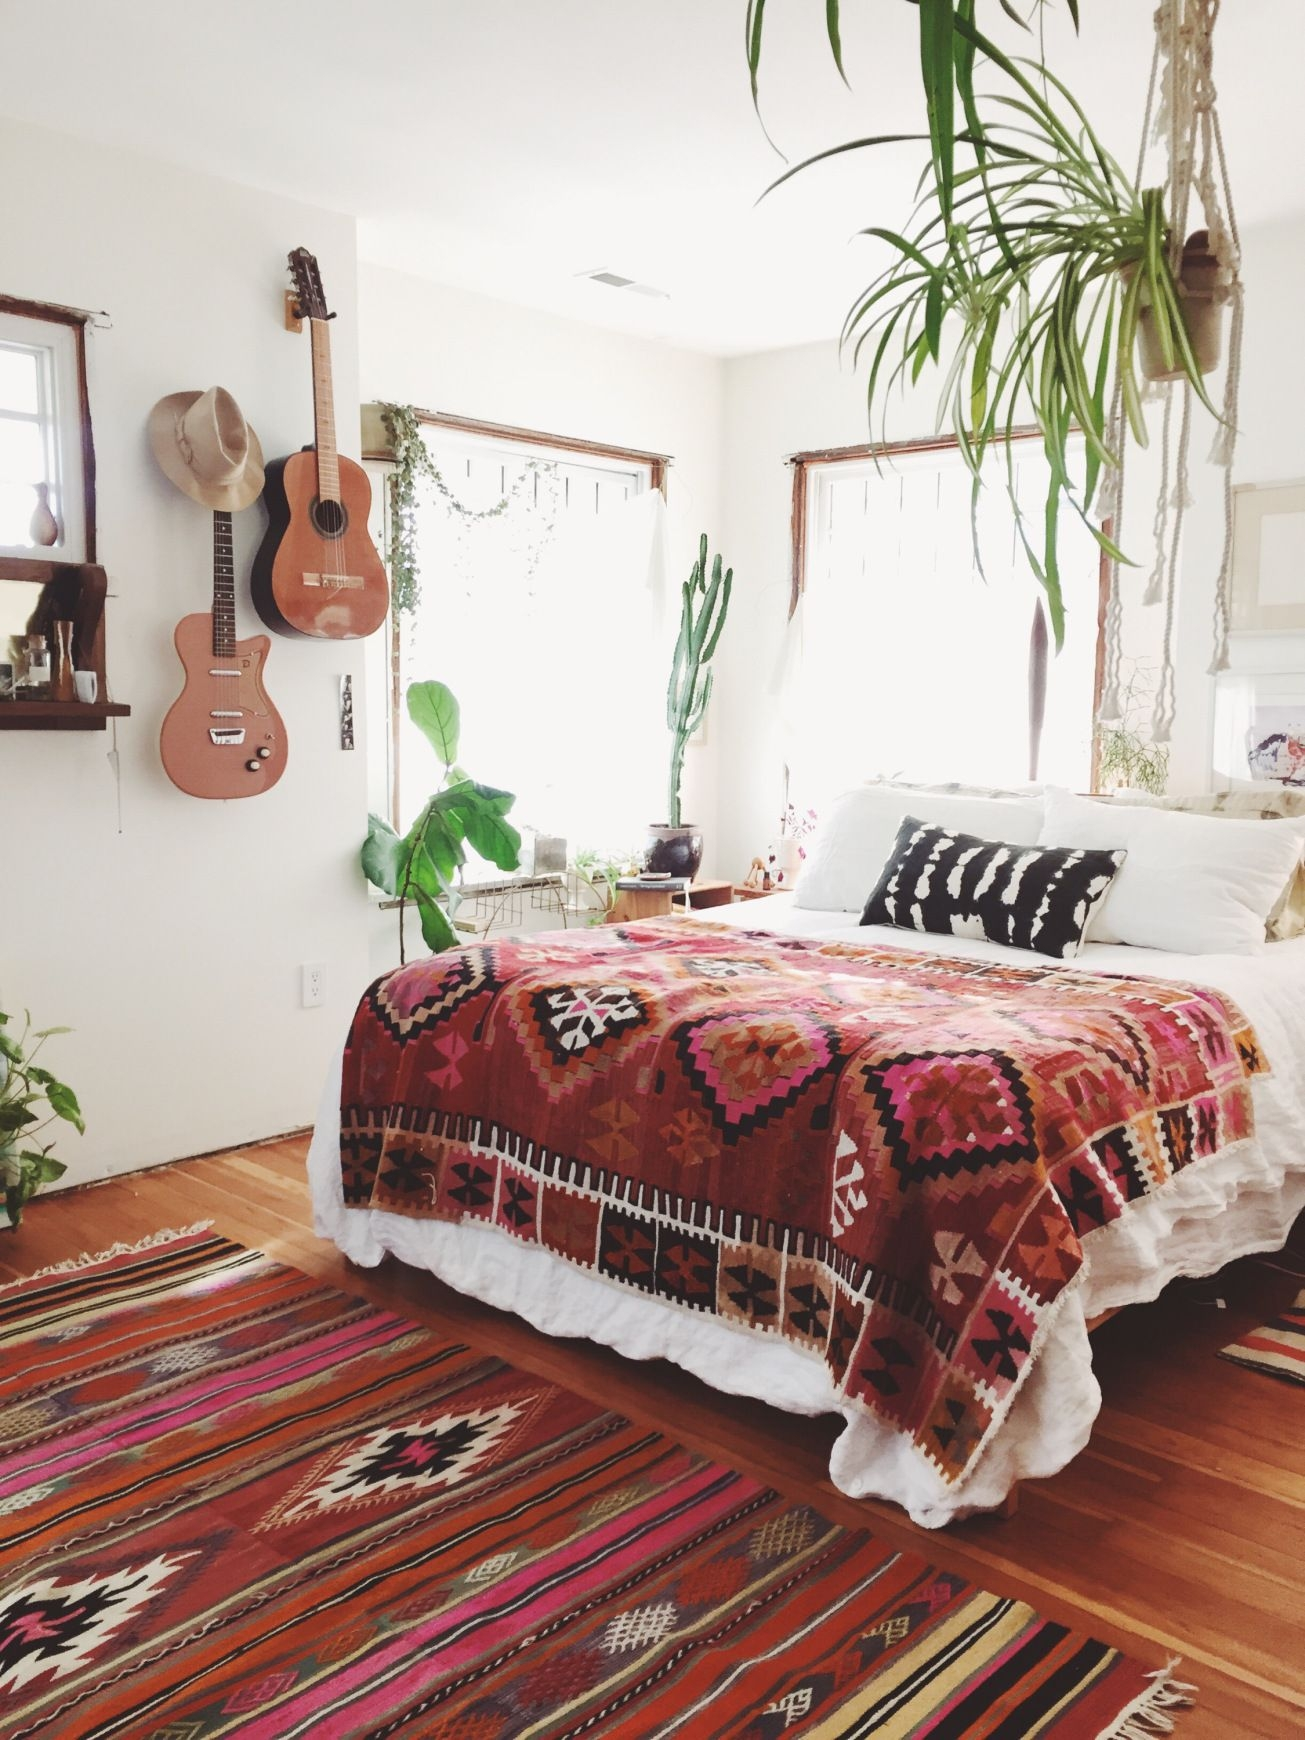 26 bohemian bedrooms thatll make you want to redecorate asap home